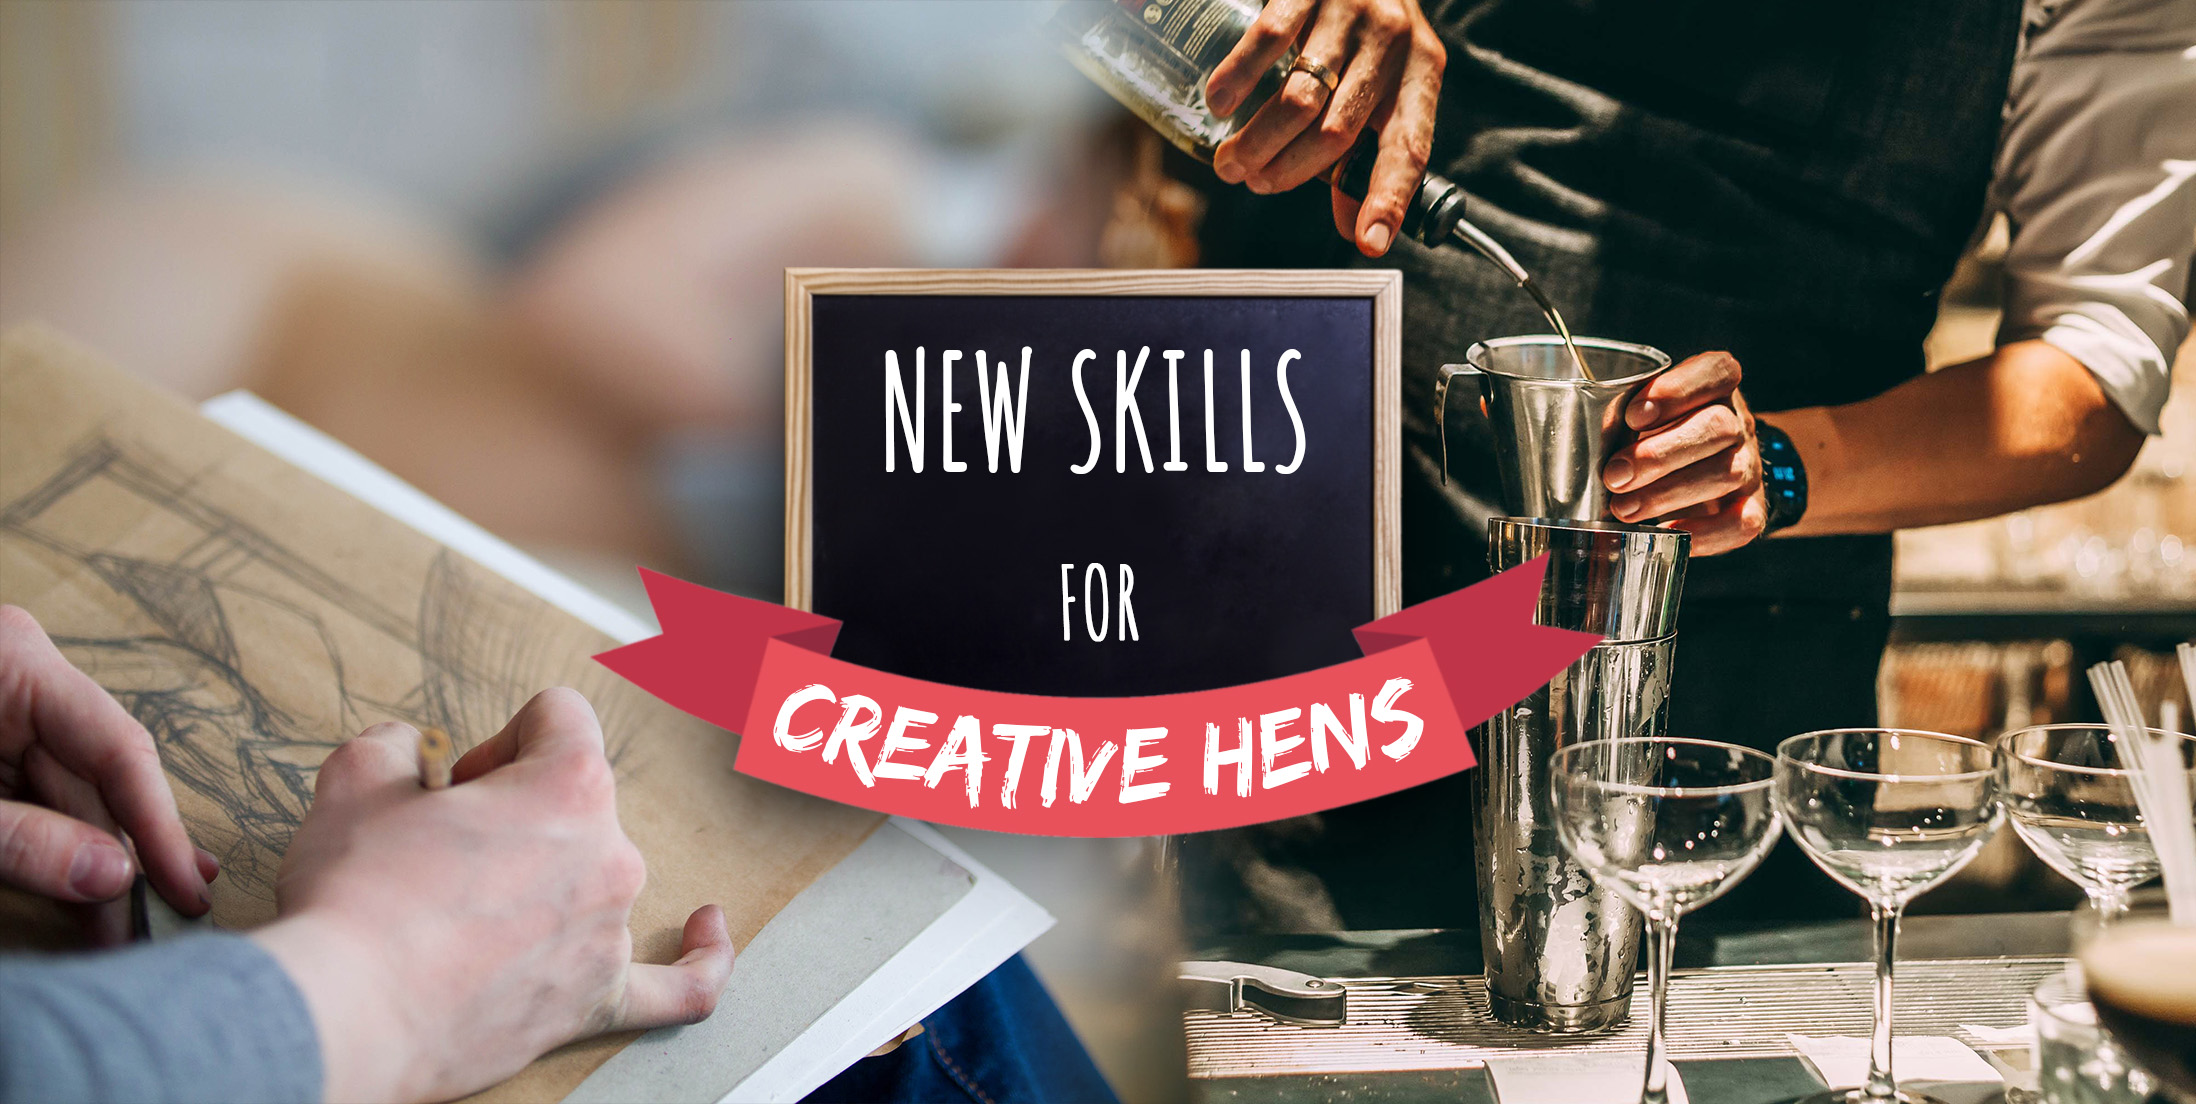 New Skills for Creative Hens